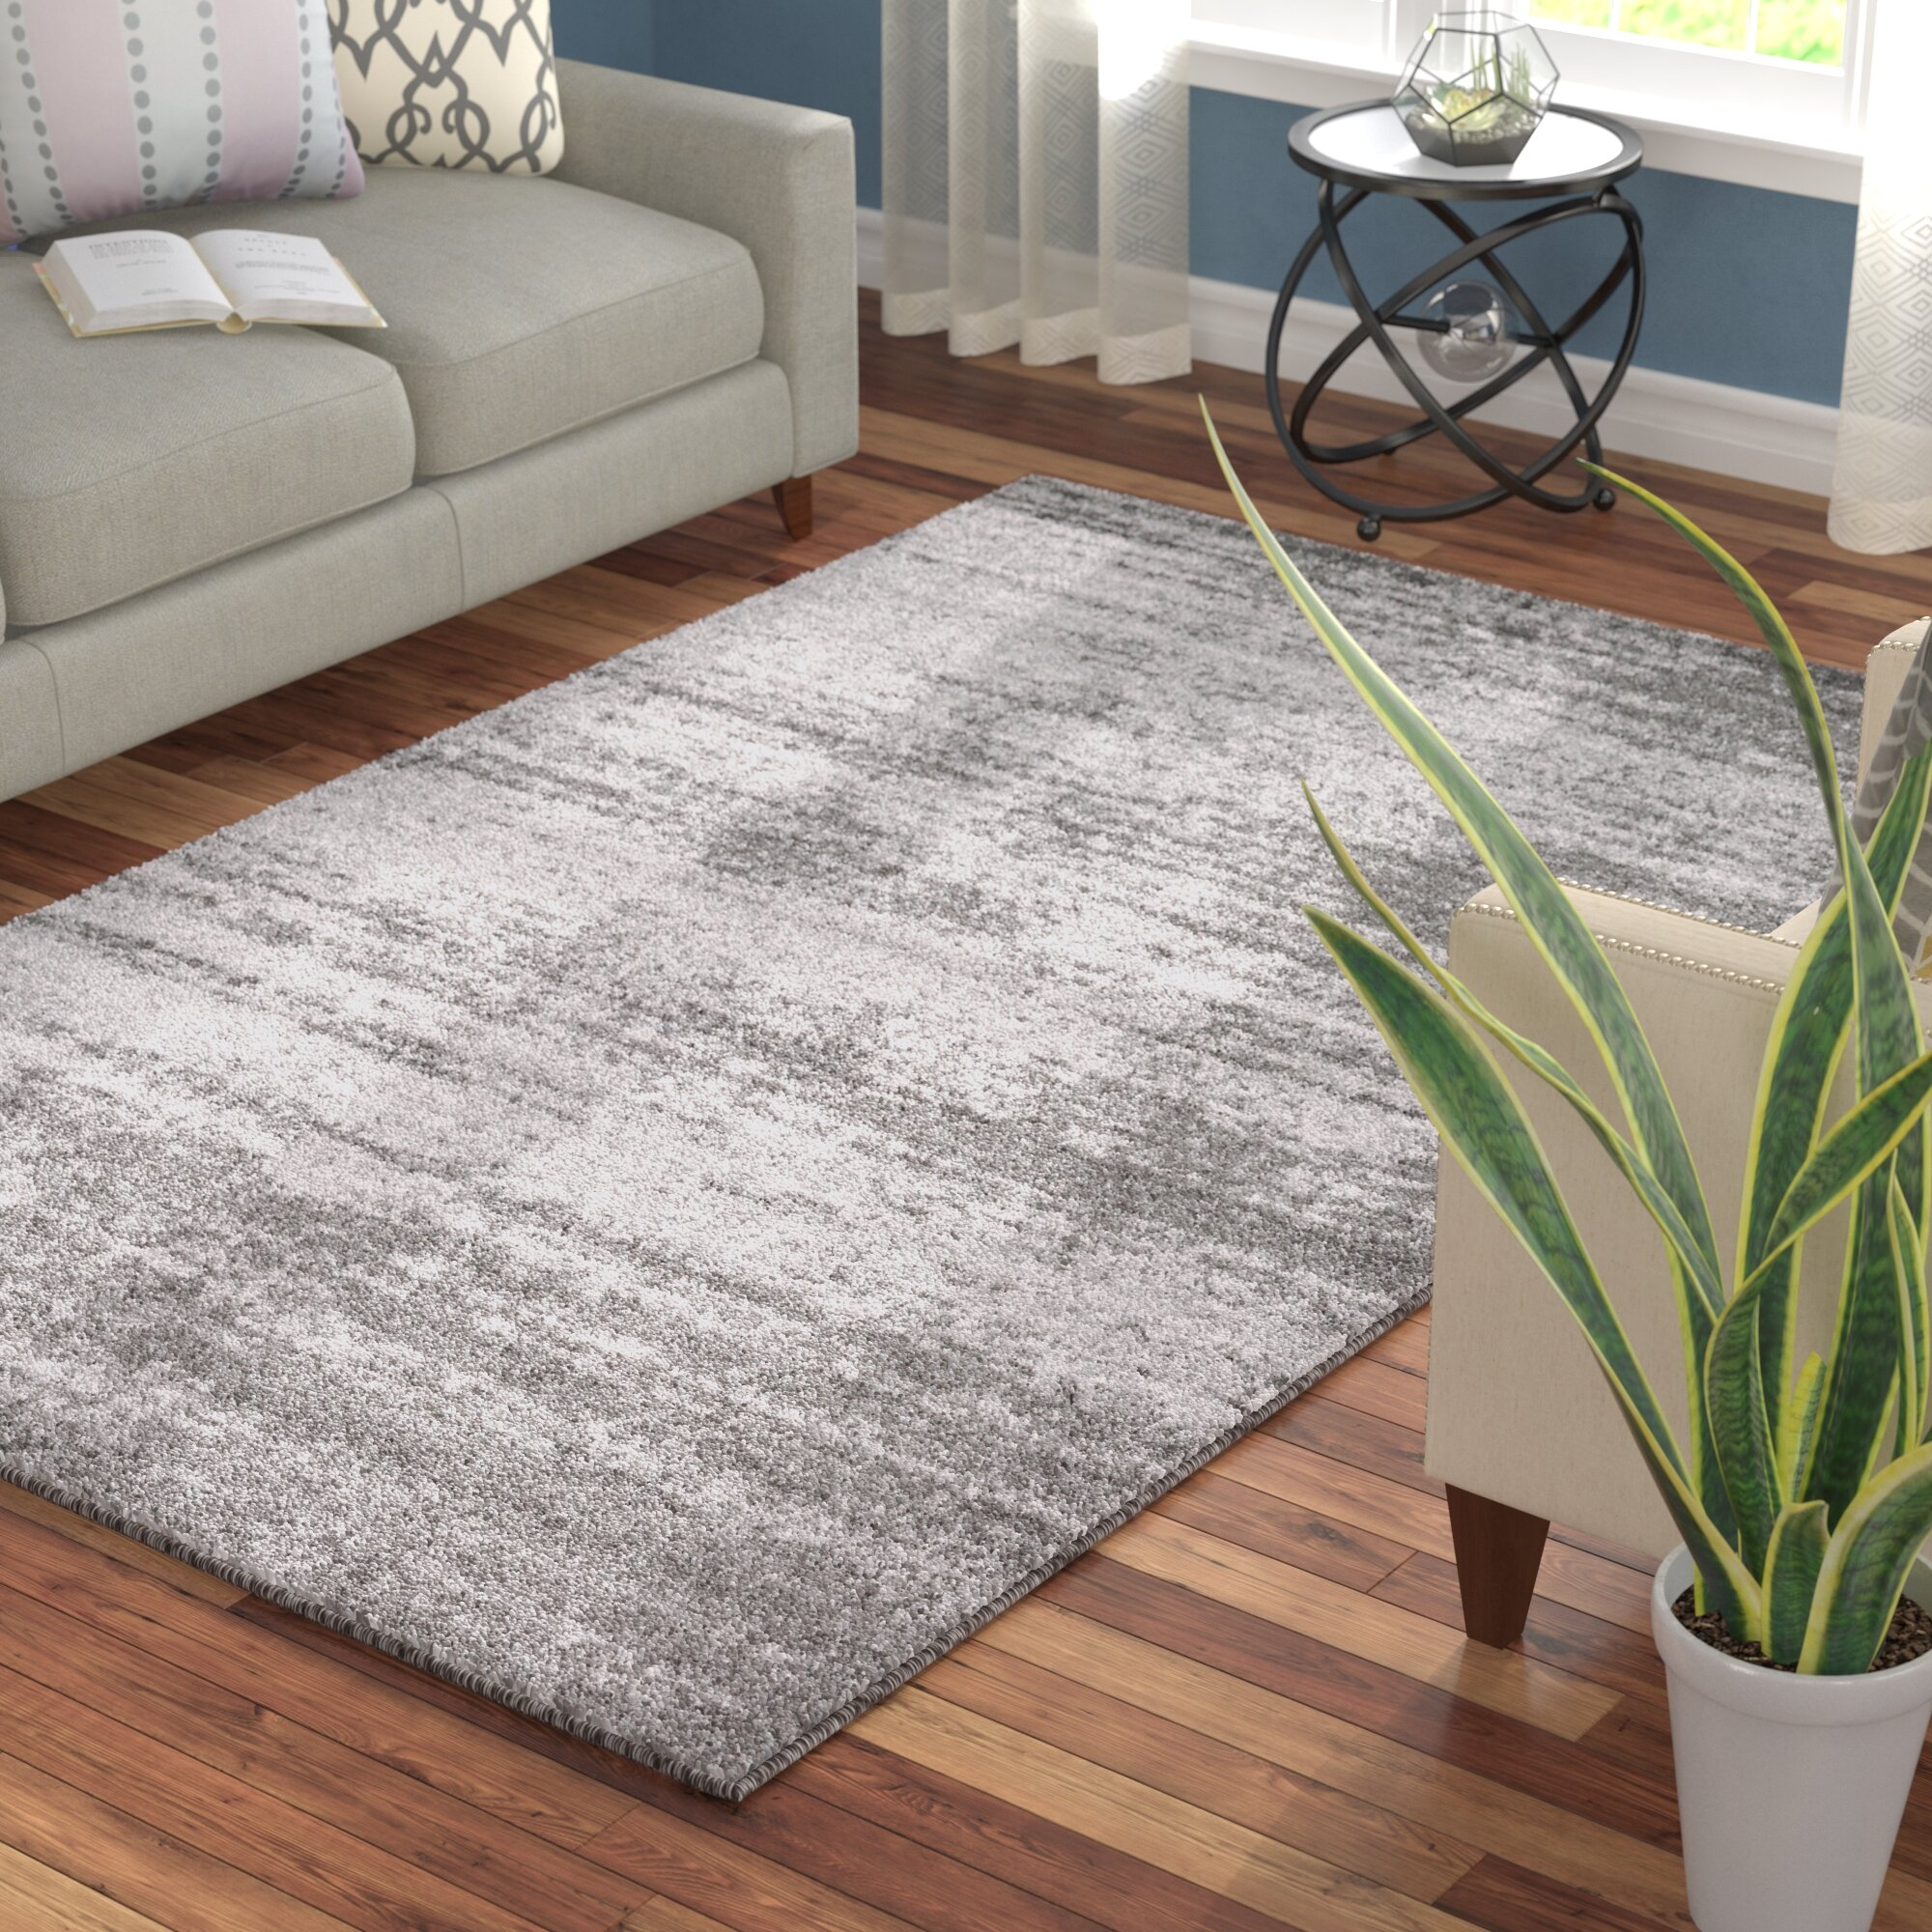 Choose the Best Area Rugs For Your Home